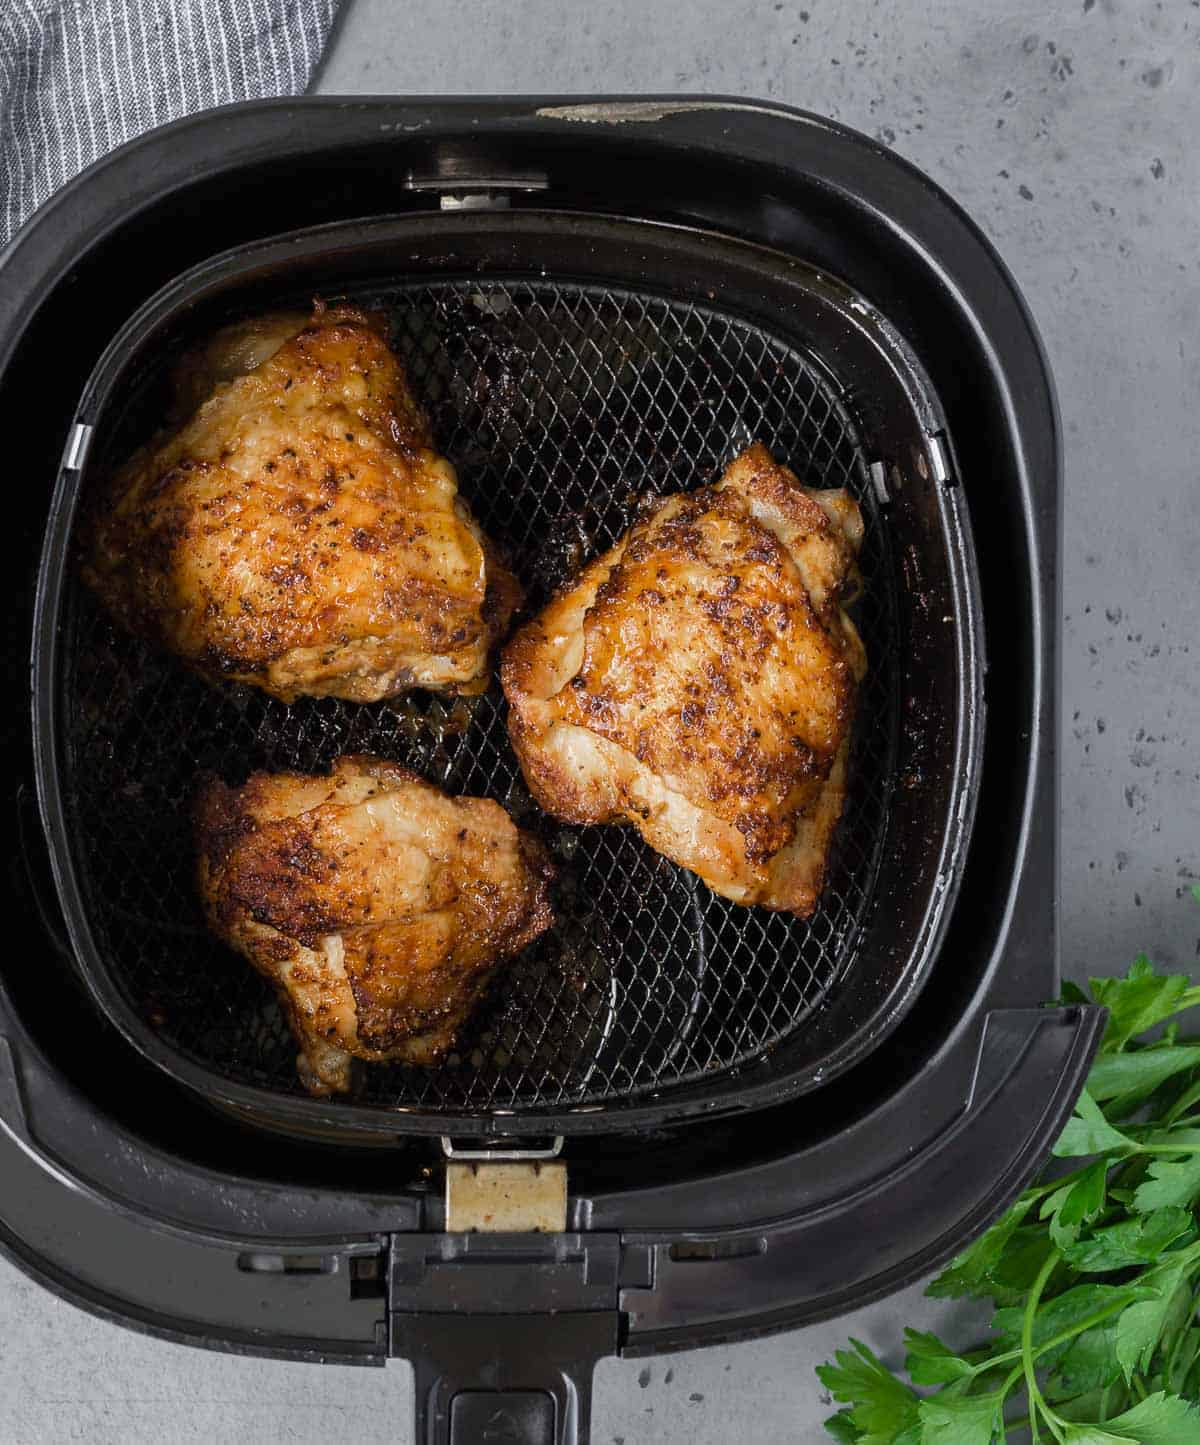 Overhead view of three chicken thighs in an air fryer basket.